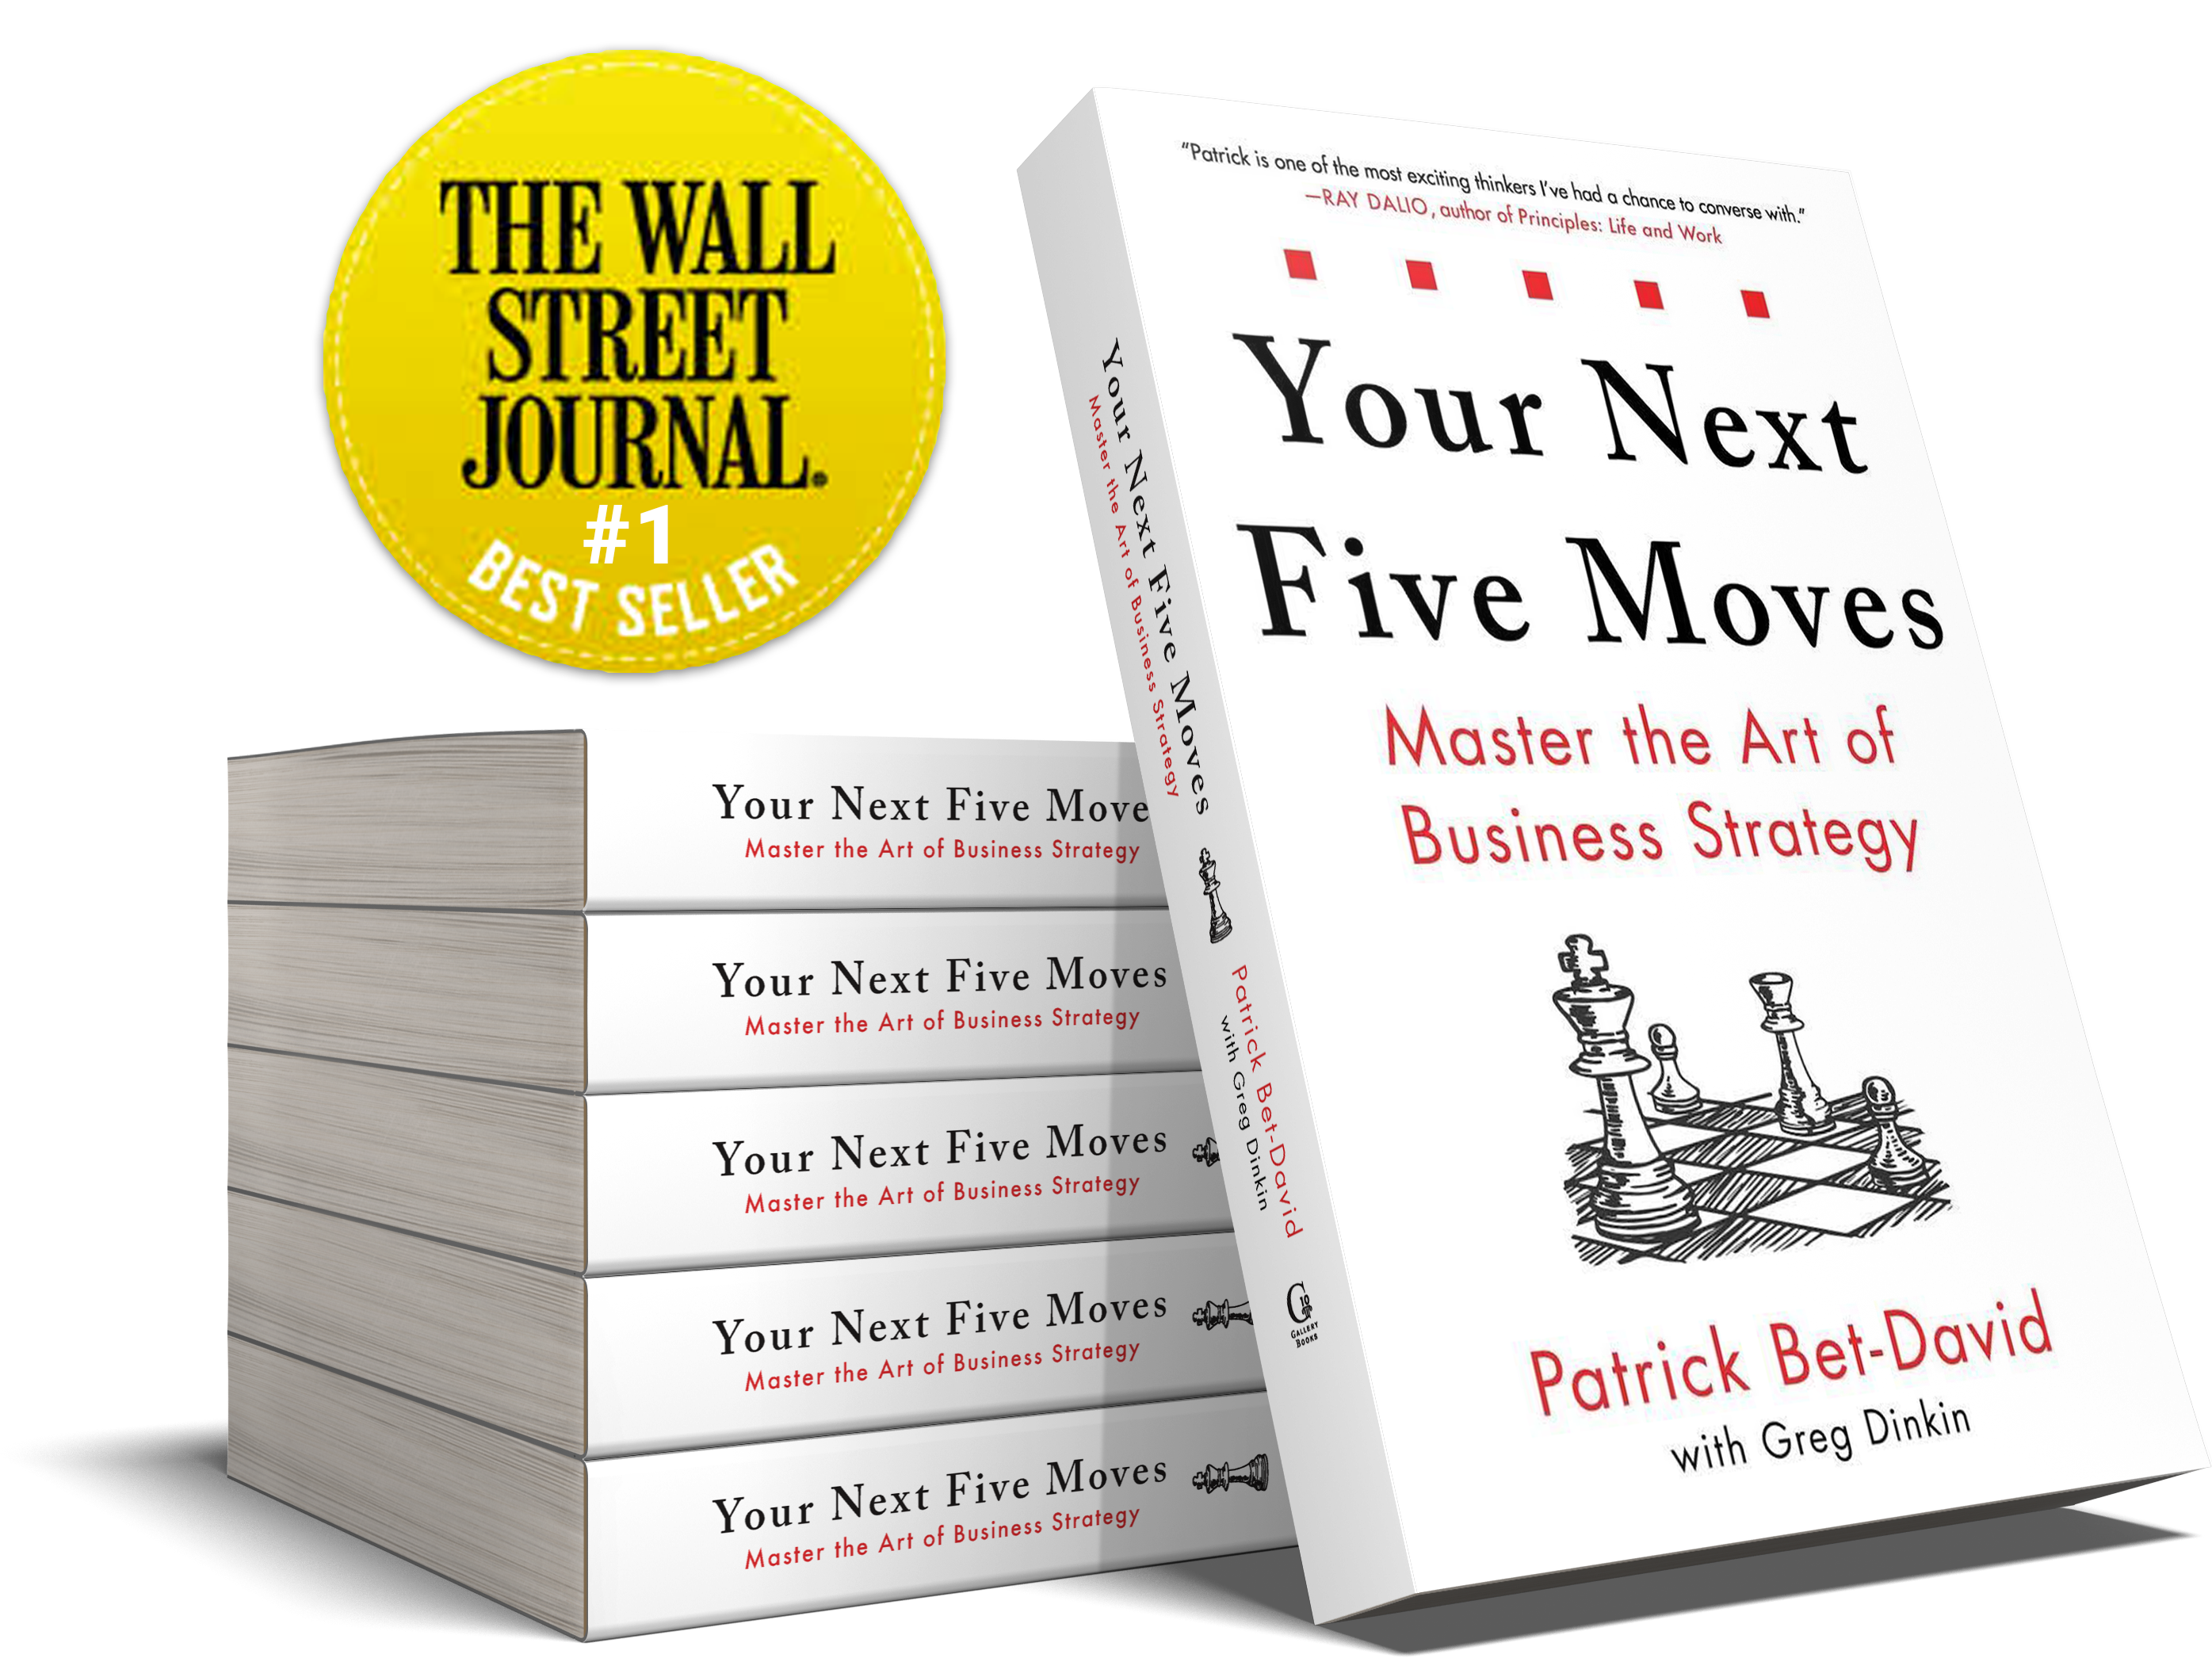 Curated content from a Wall Street Journal #1 Bestselling book